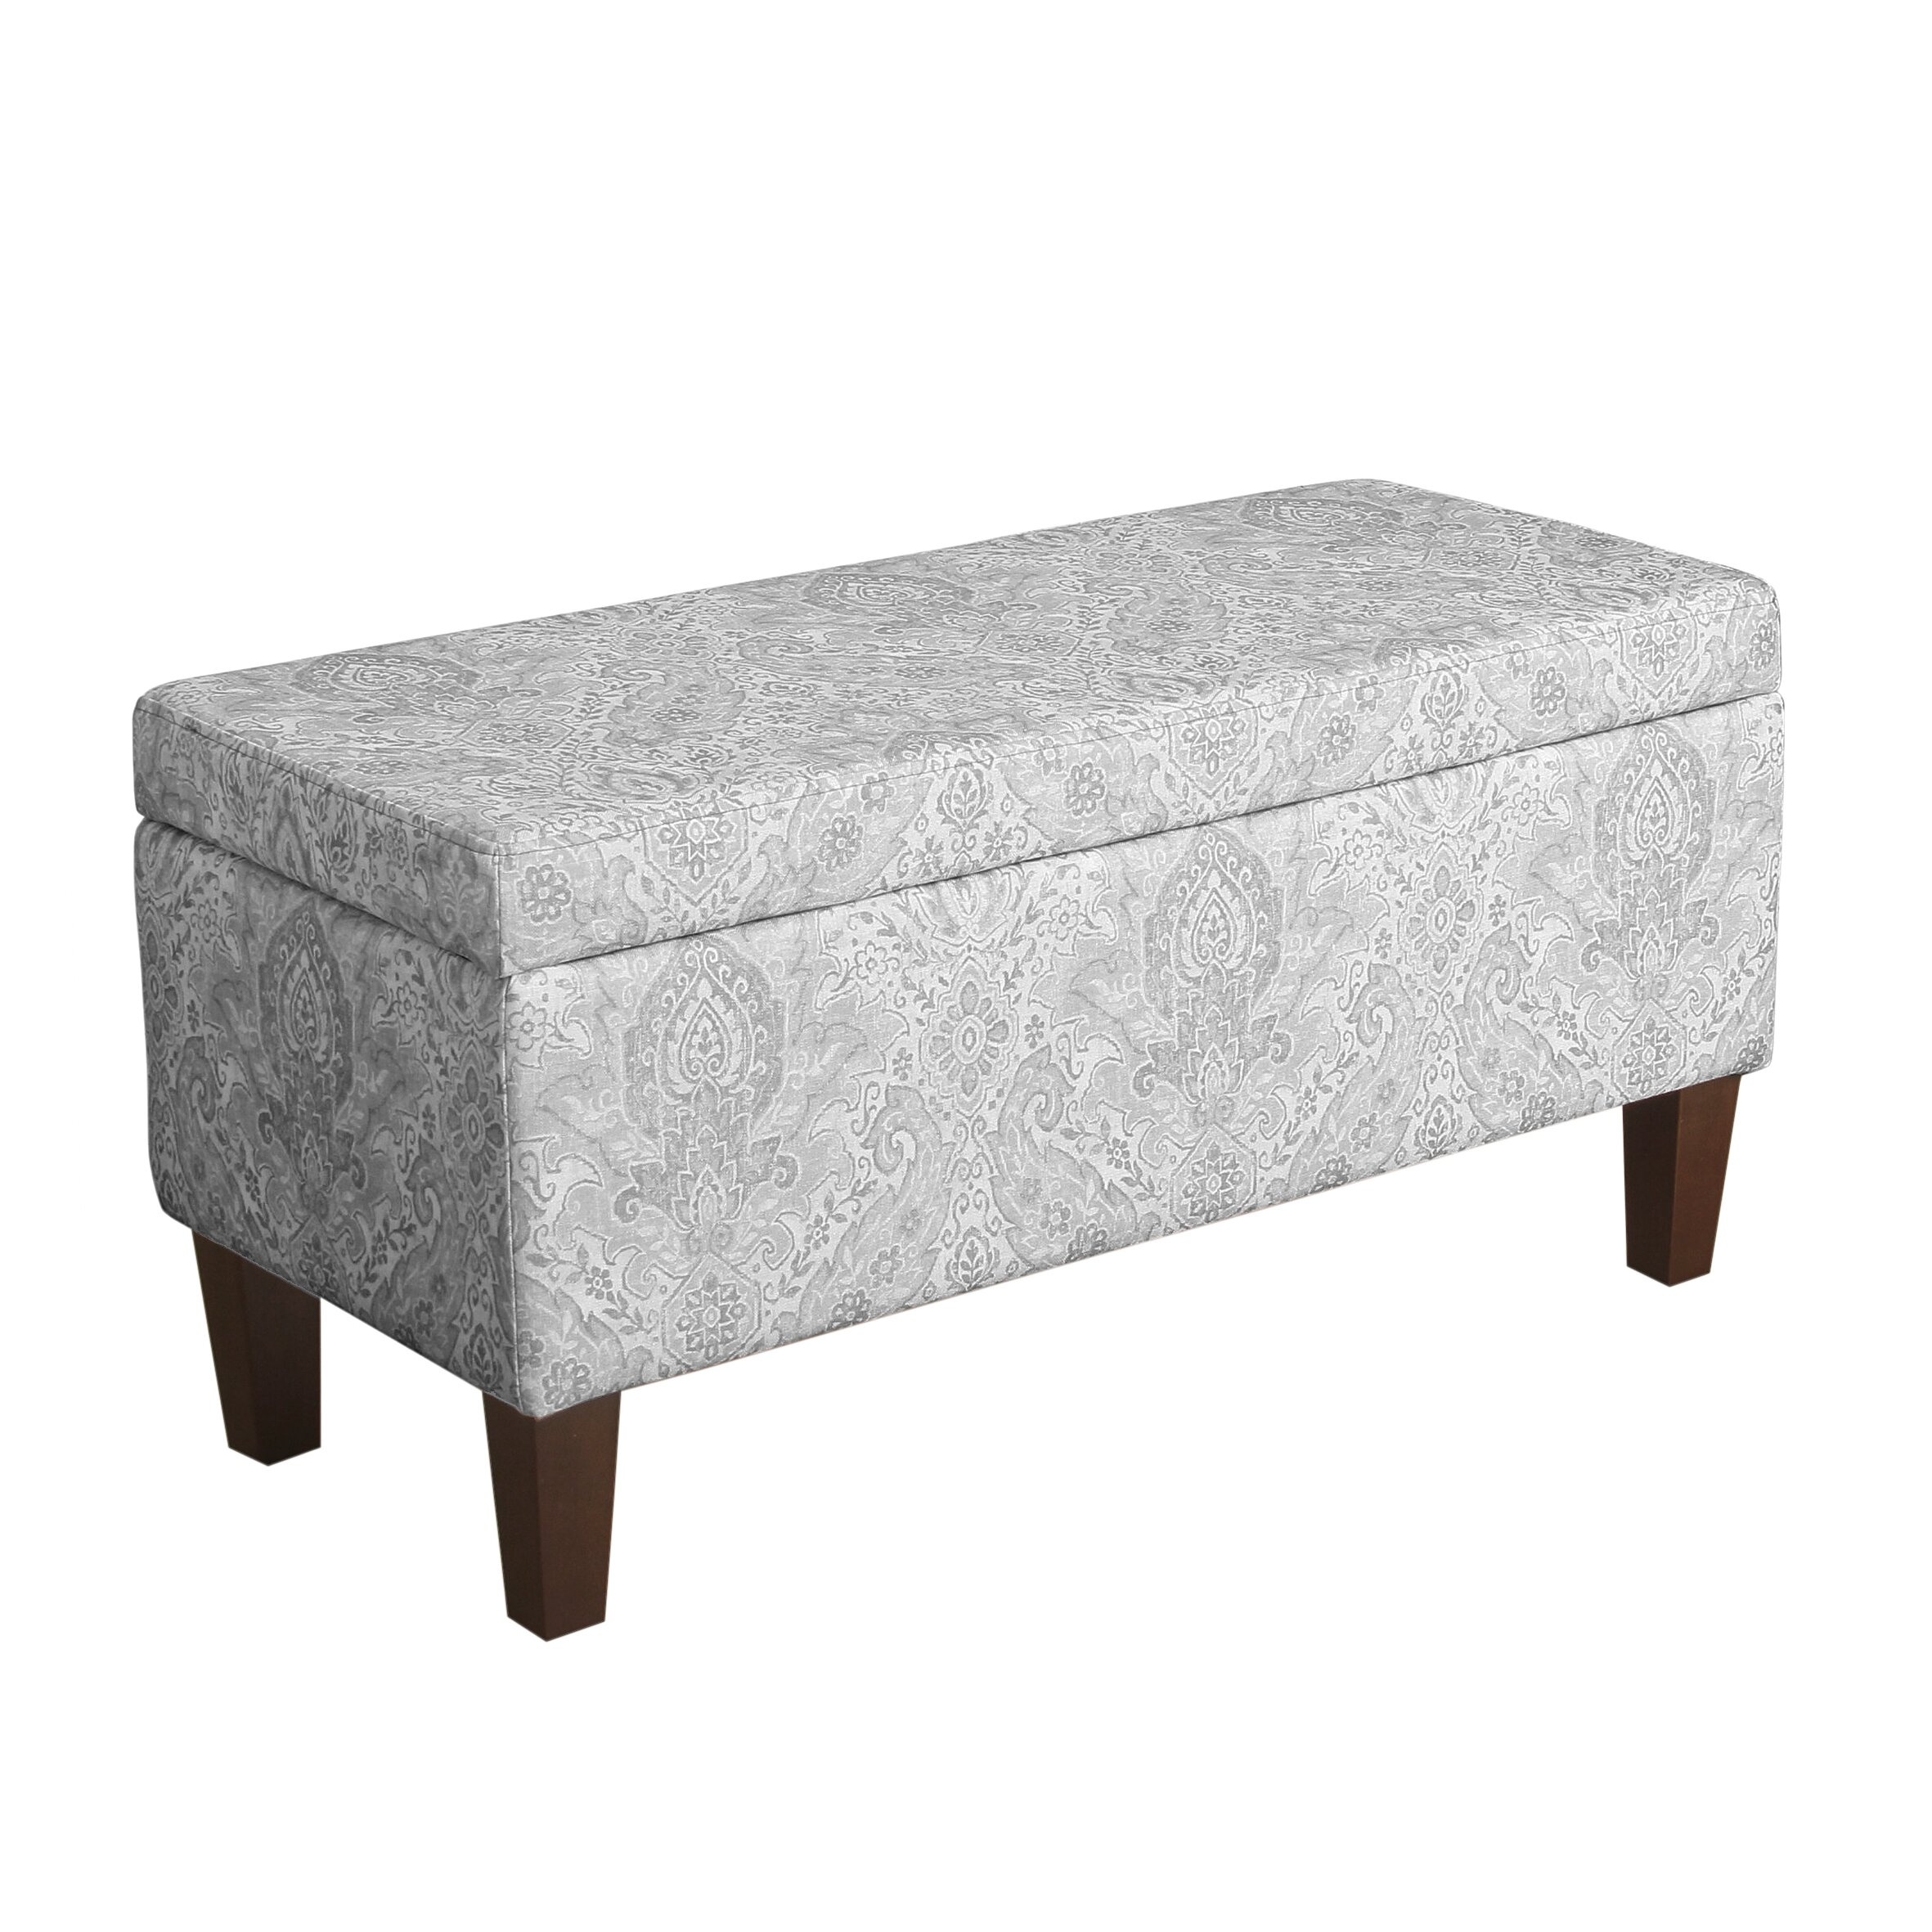 Bedroom bench dimensions - Bailey Upholstered Storage Bench